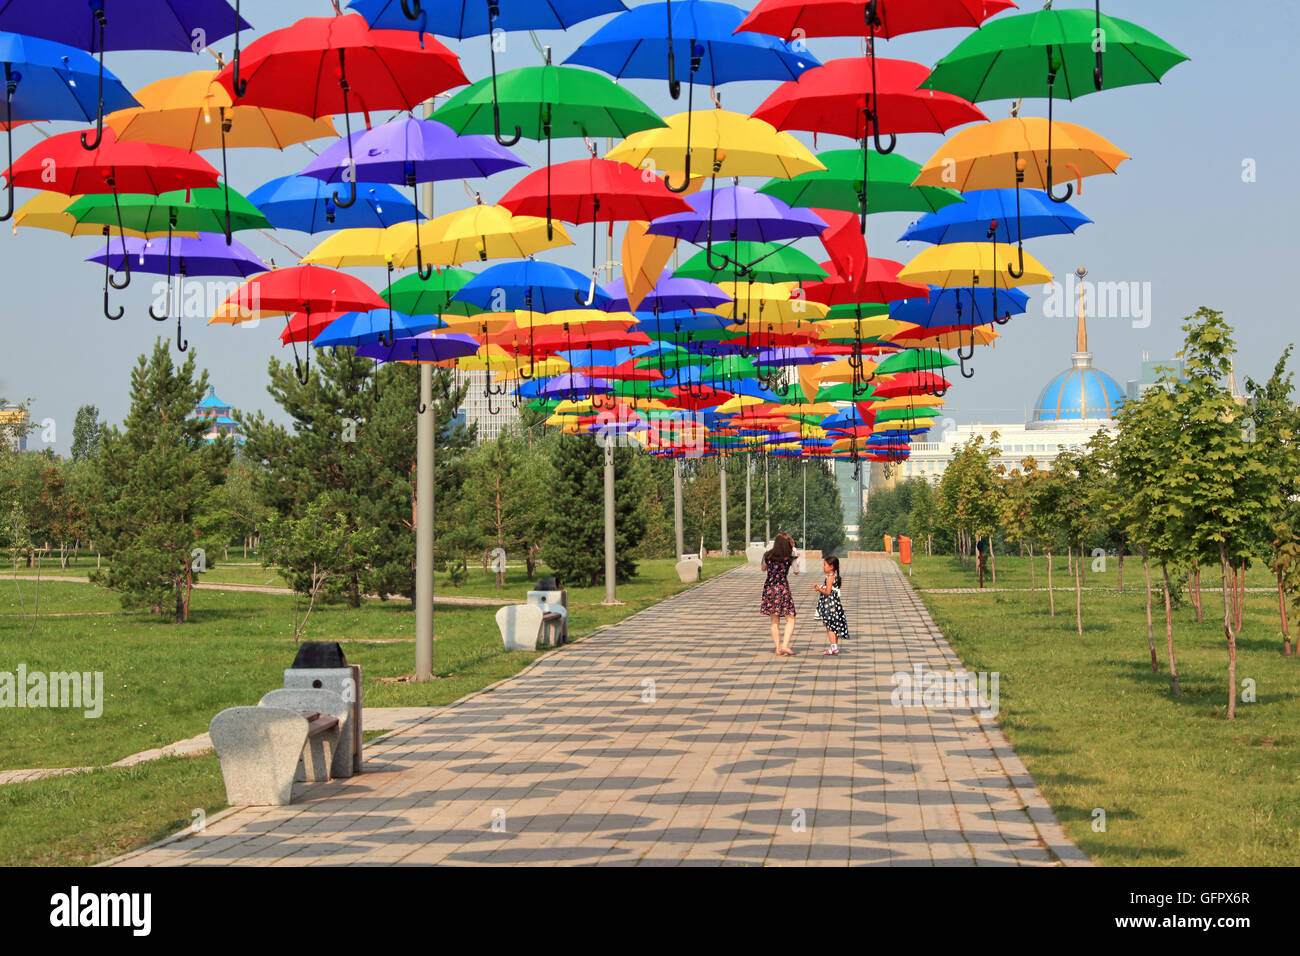 ASTANA, KAZAKHSTAN - JULY 07, 2016: art installation in the form of multicolored umbrellas in the central park of - Stock Image